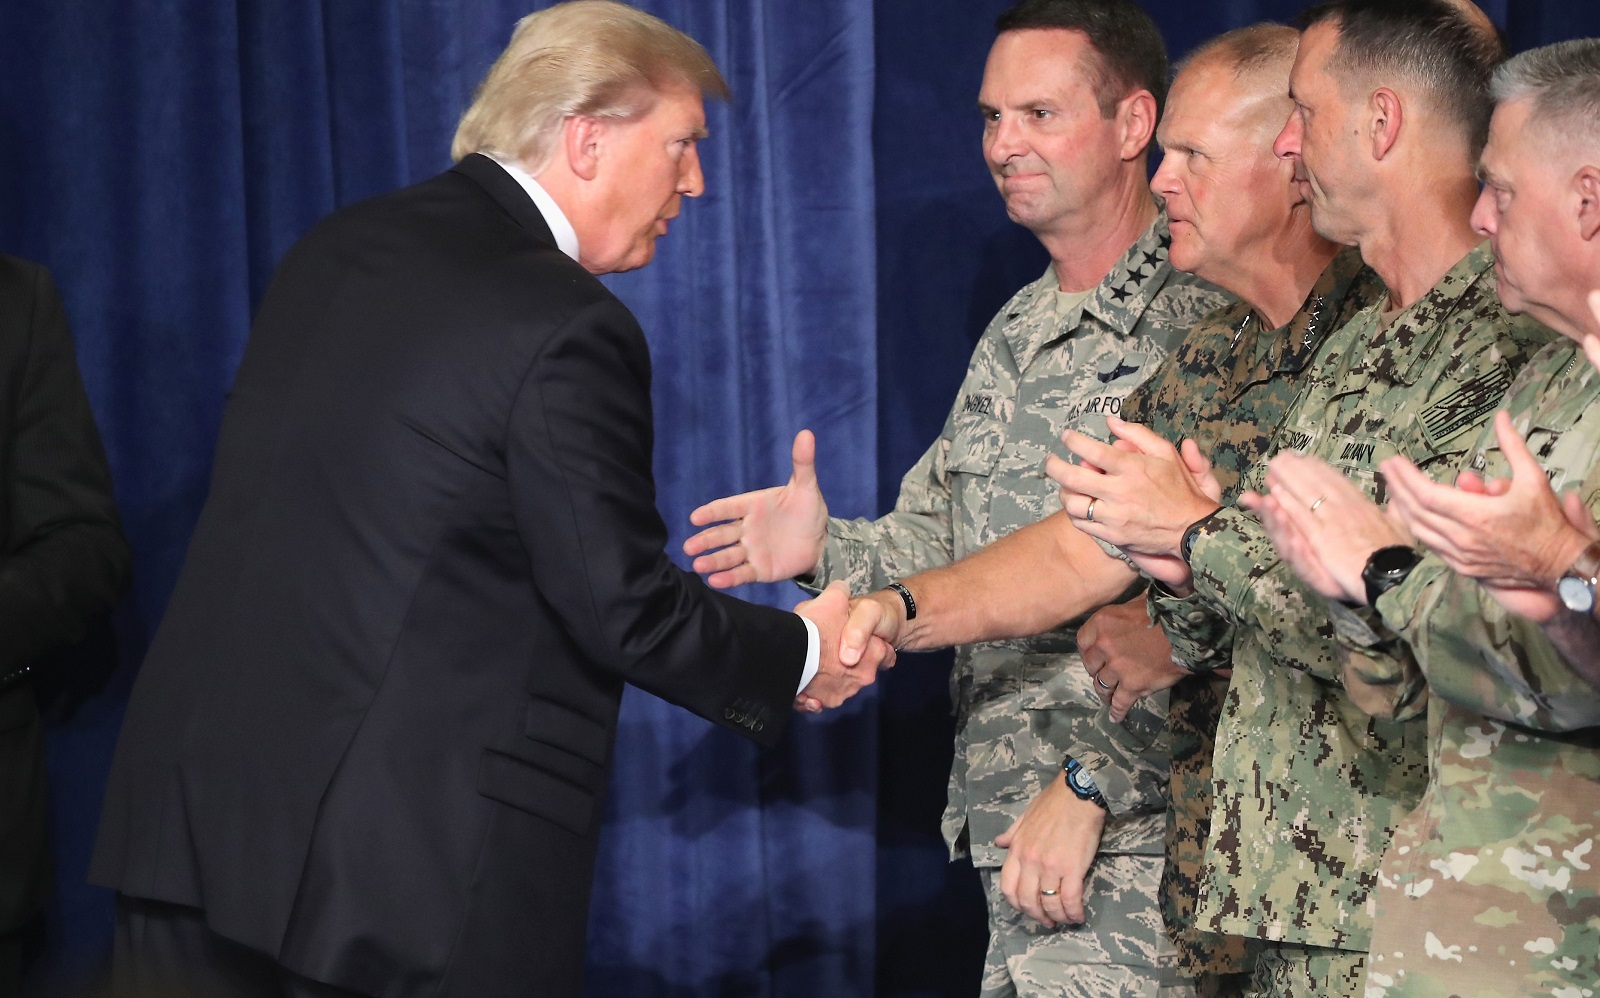 President Donald Trump greets military leaders before his speech on Afghanistan. (Photo by Mark Wilson/Getty Images)